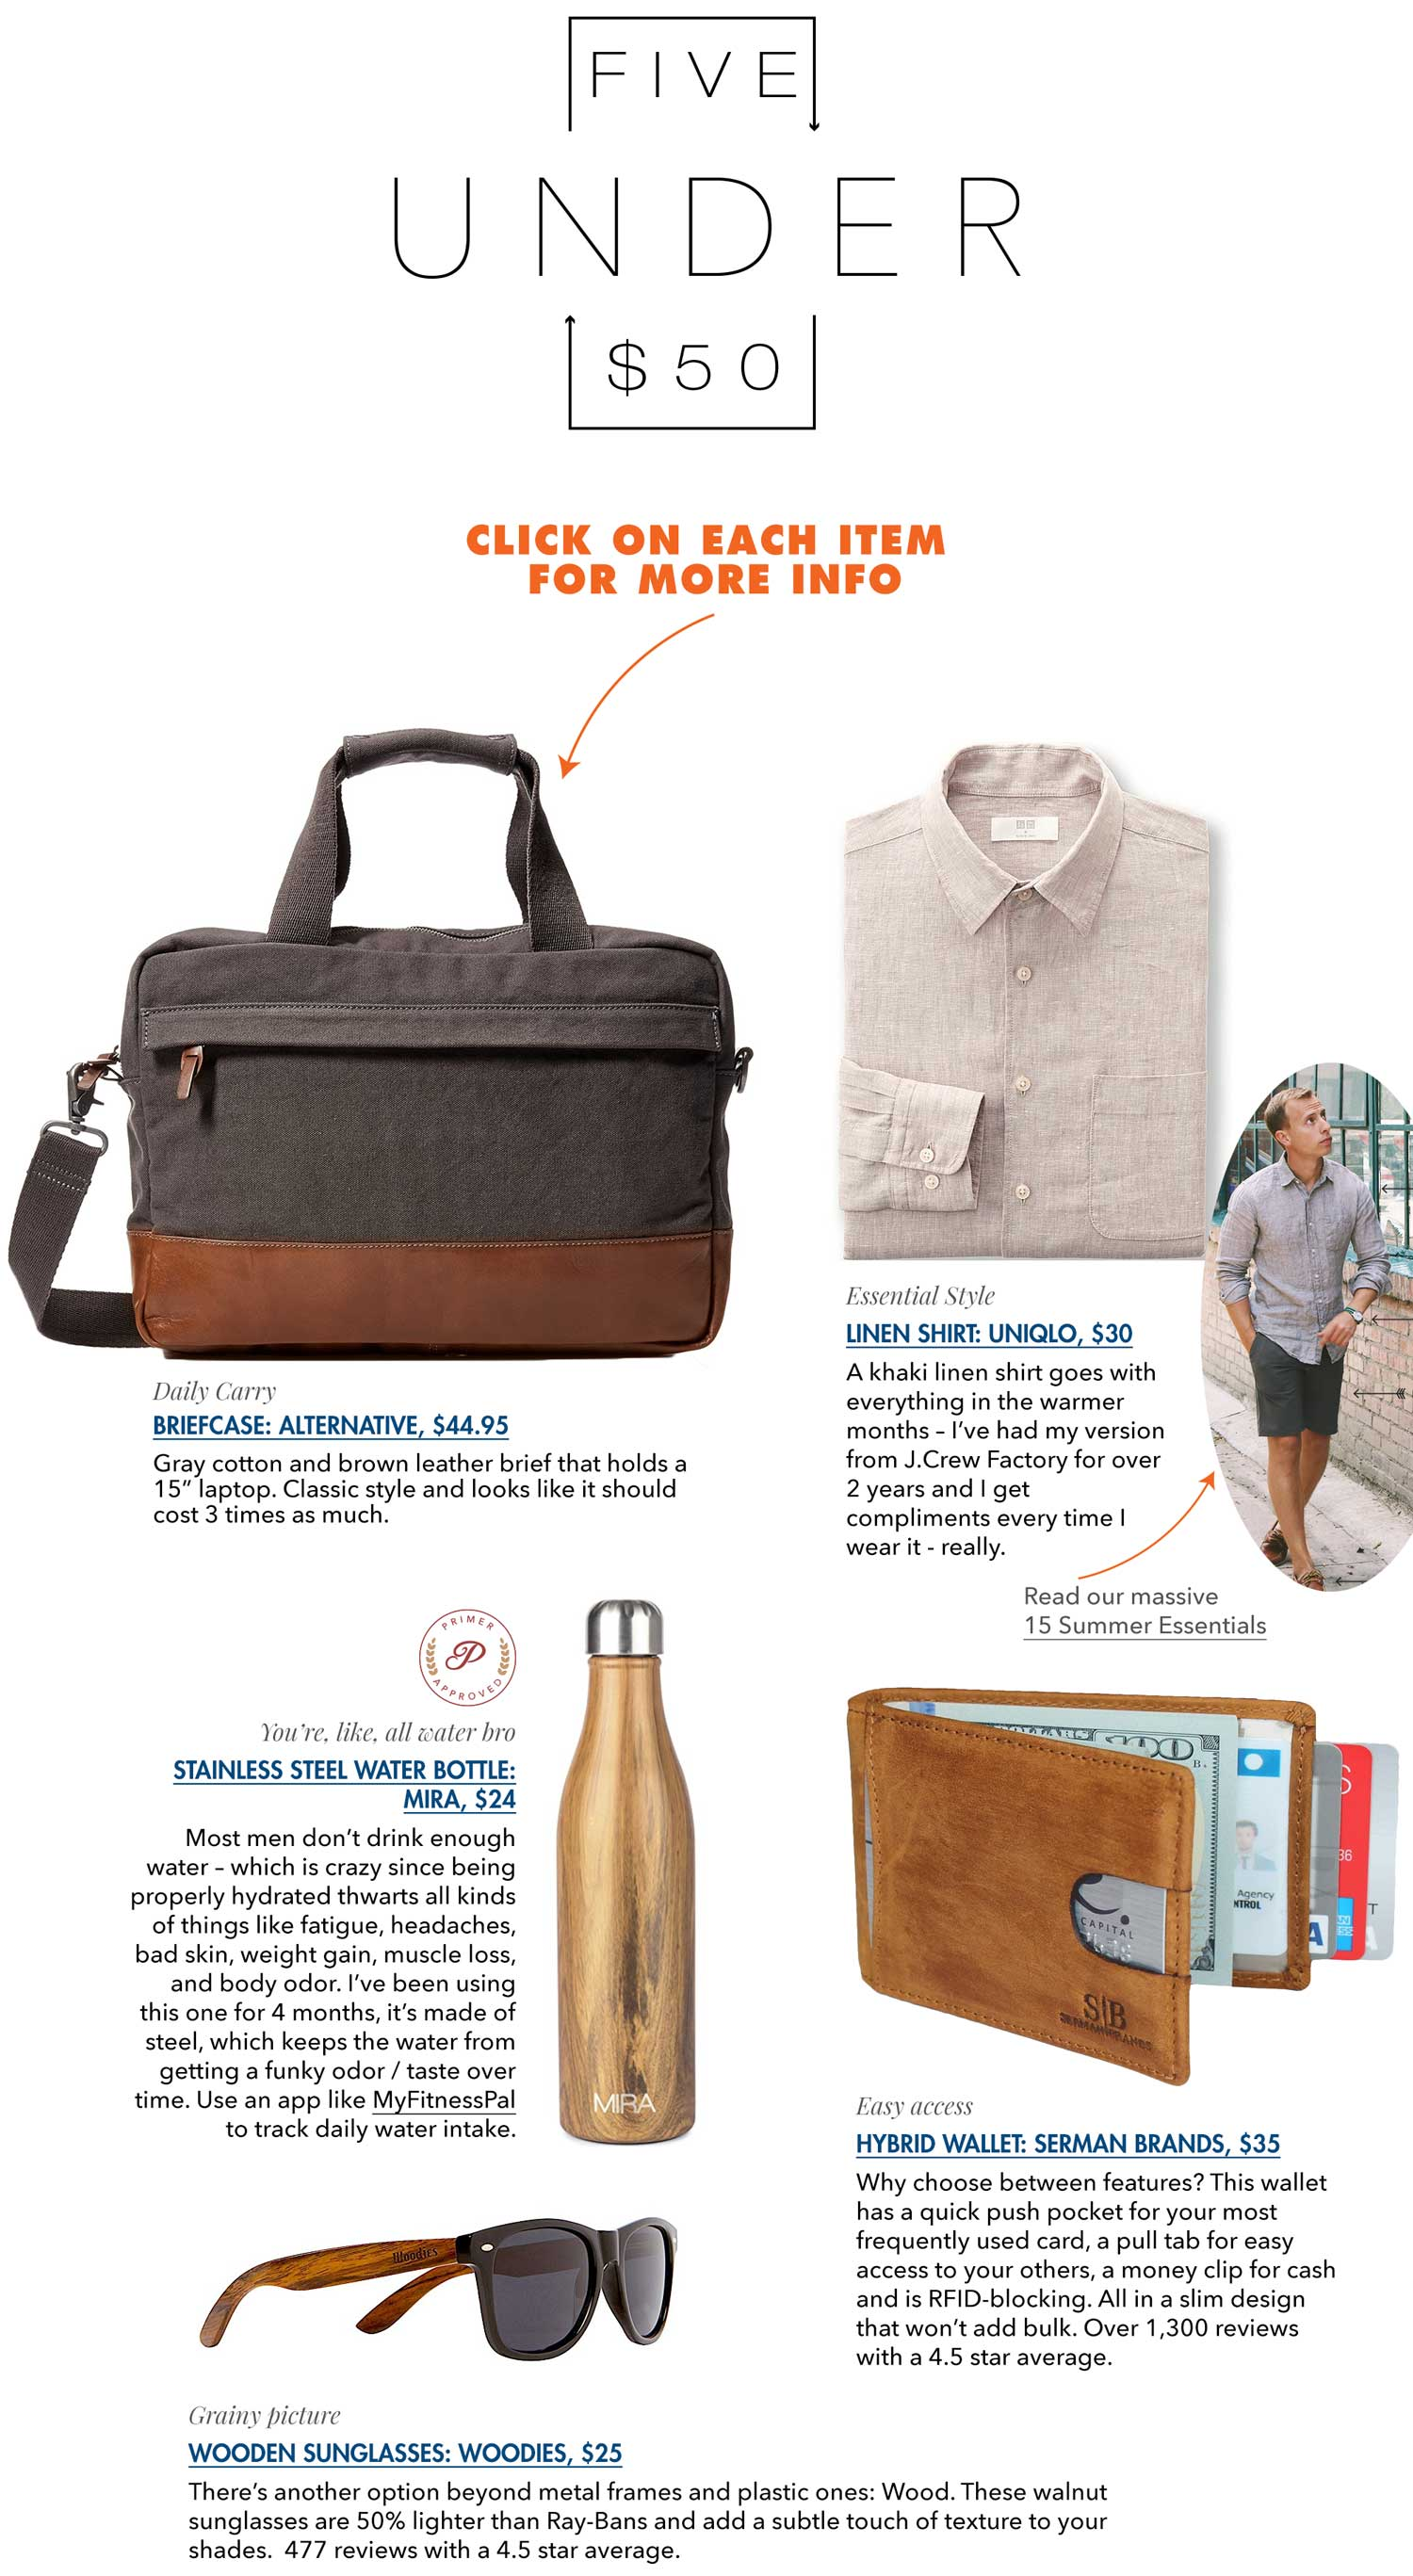 5 under 50 with briefcase linen shirt, wallet, water bottle, and sunglasses